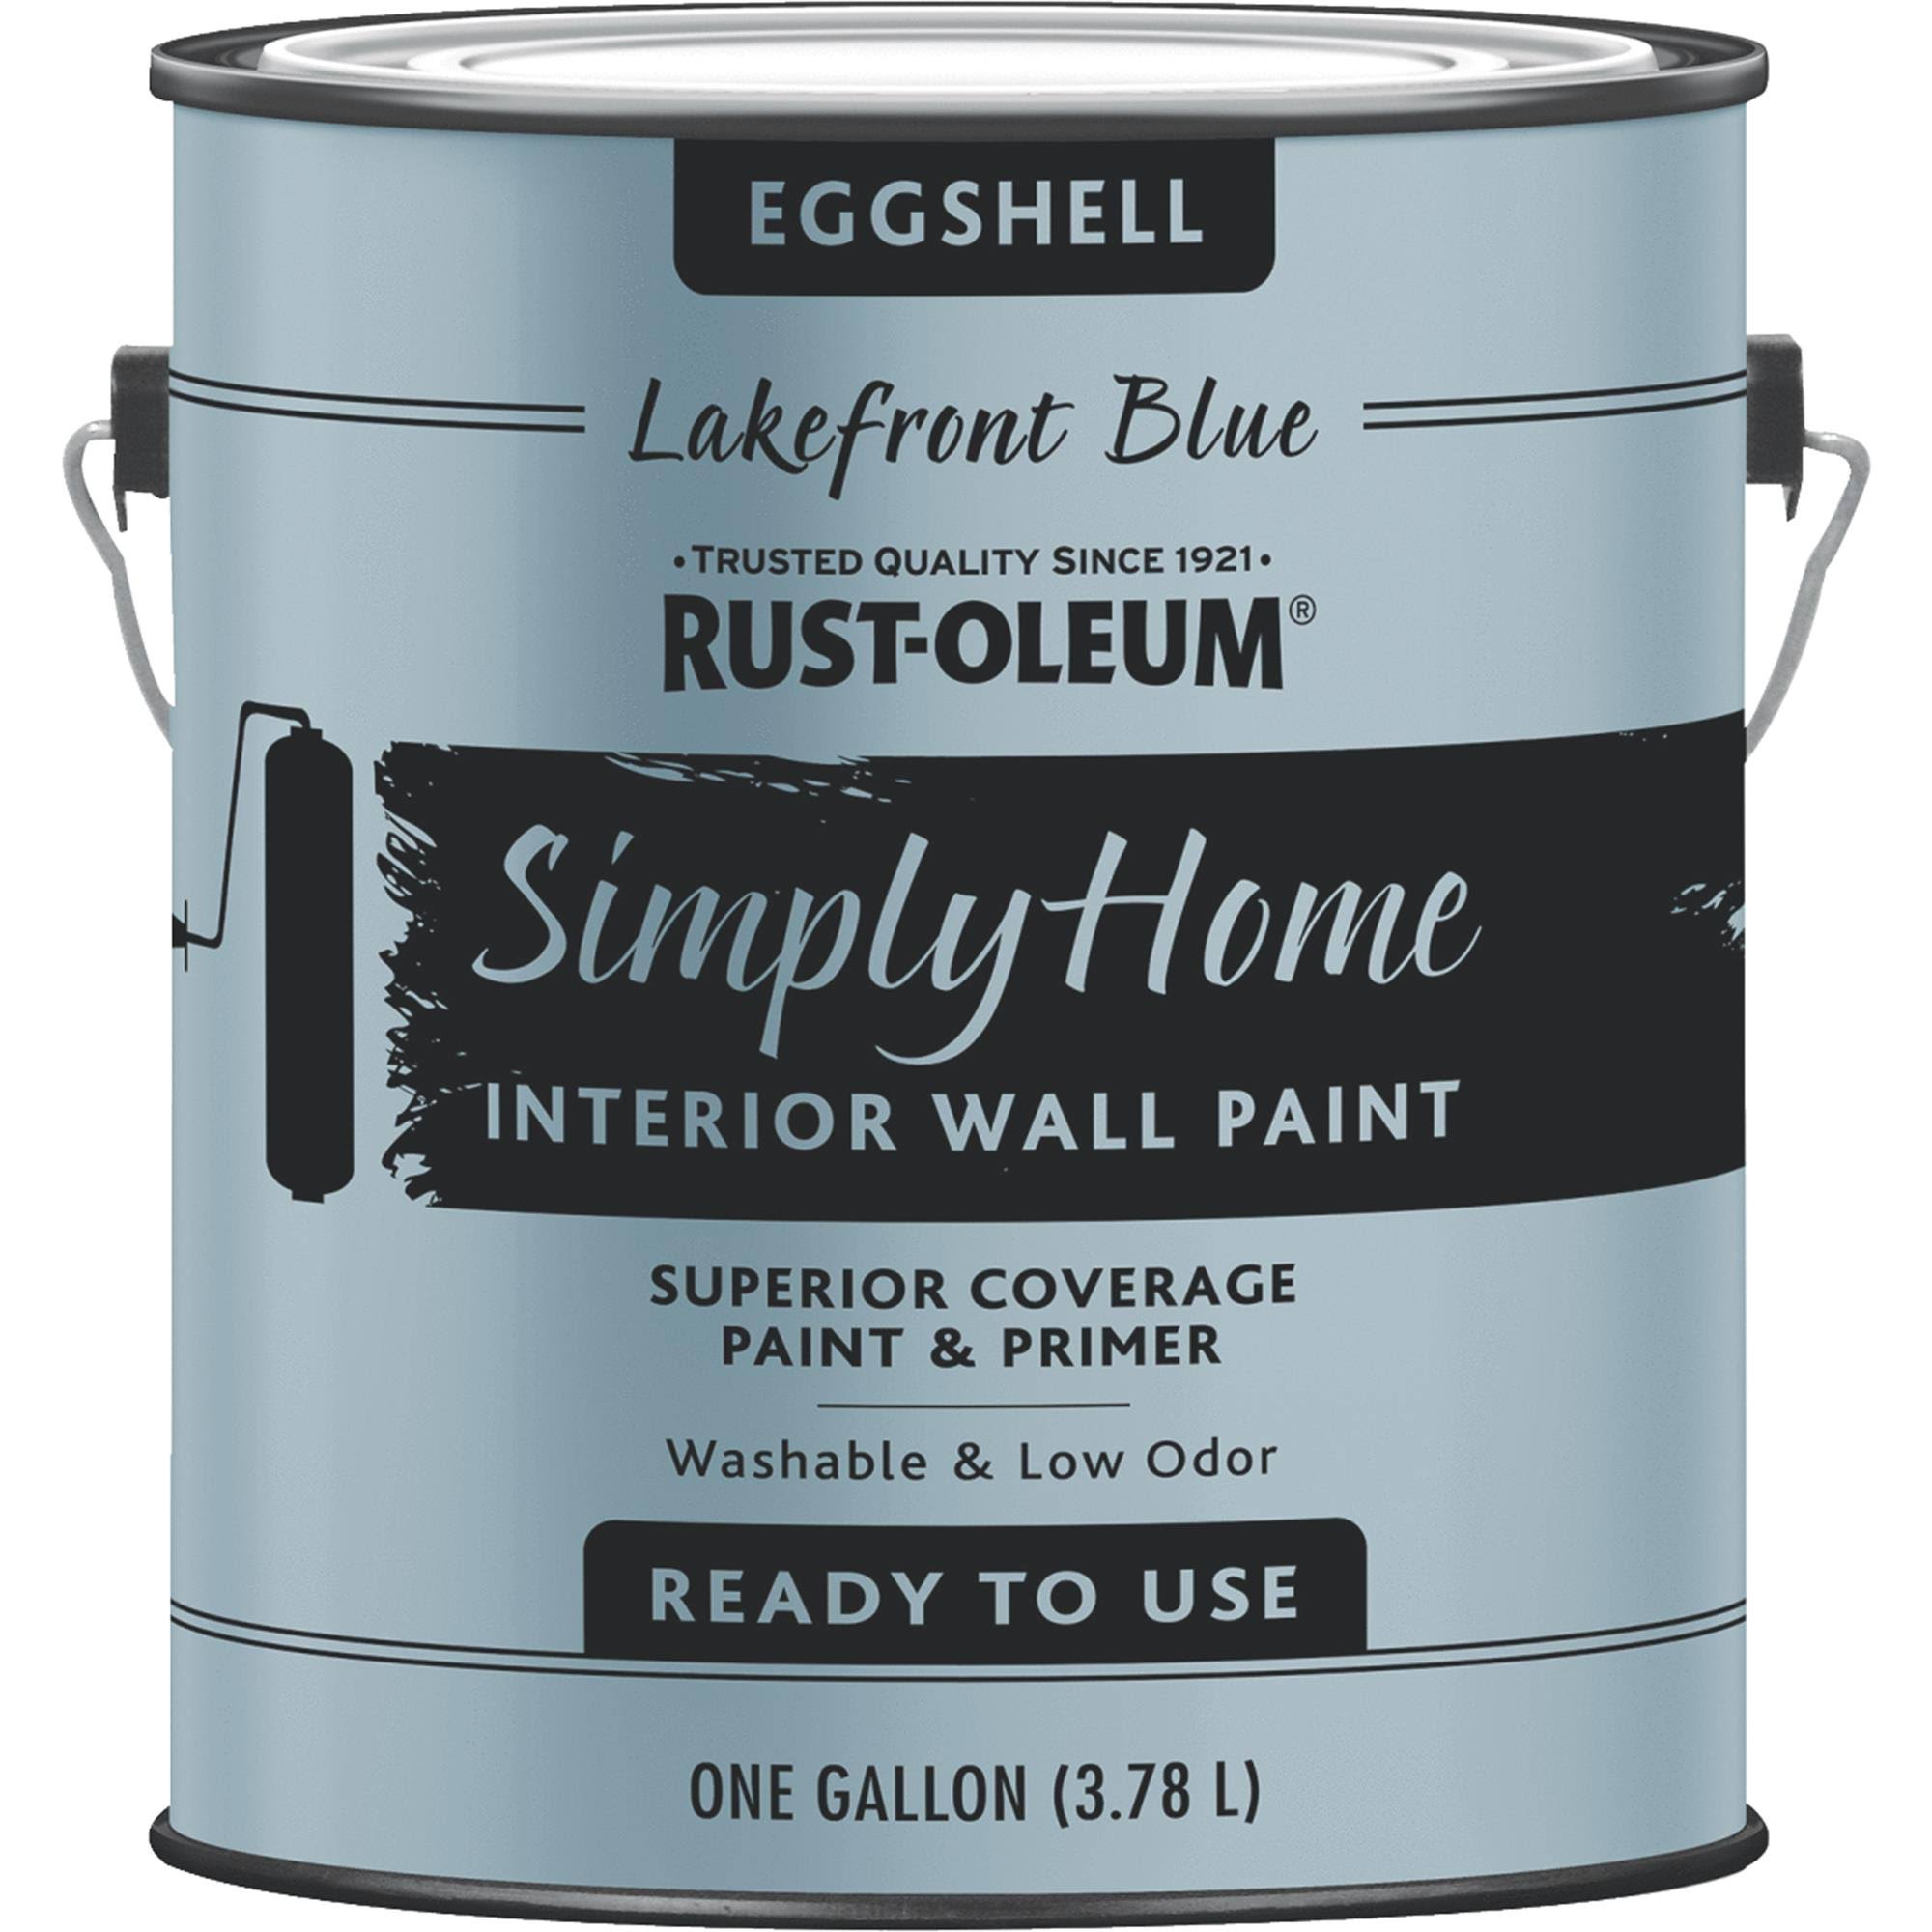 Rust-oleum 332144 Simply Home Lakefront Blue Interior Wall Paint - Eggshell, 1gal